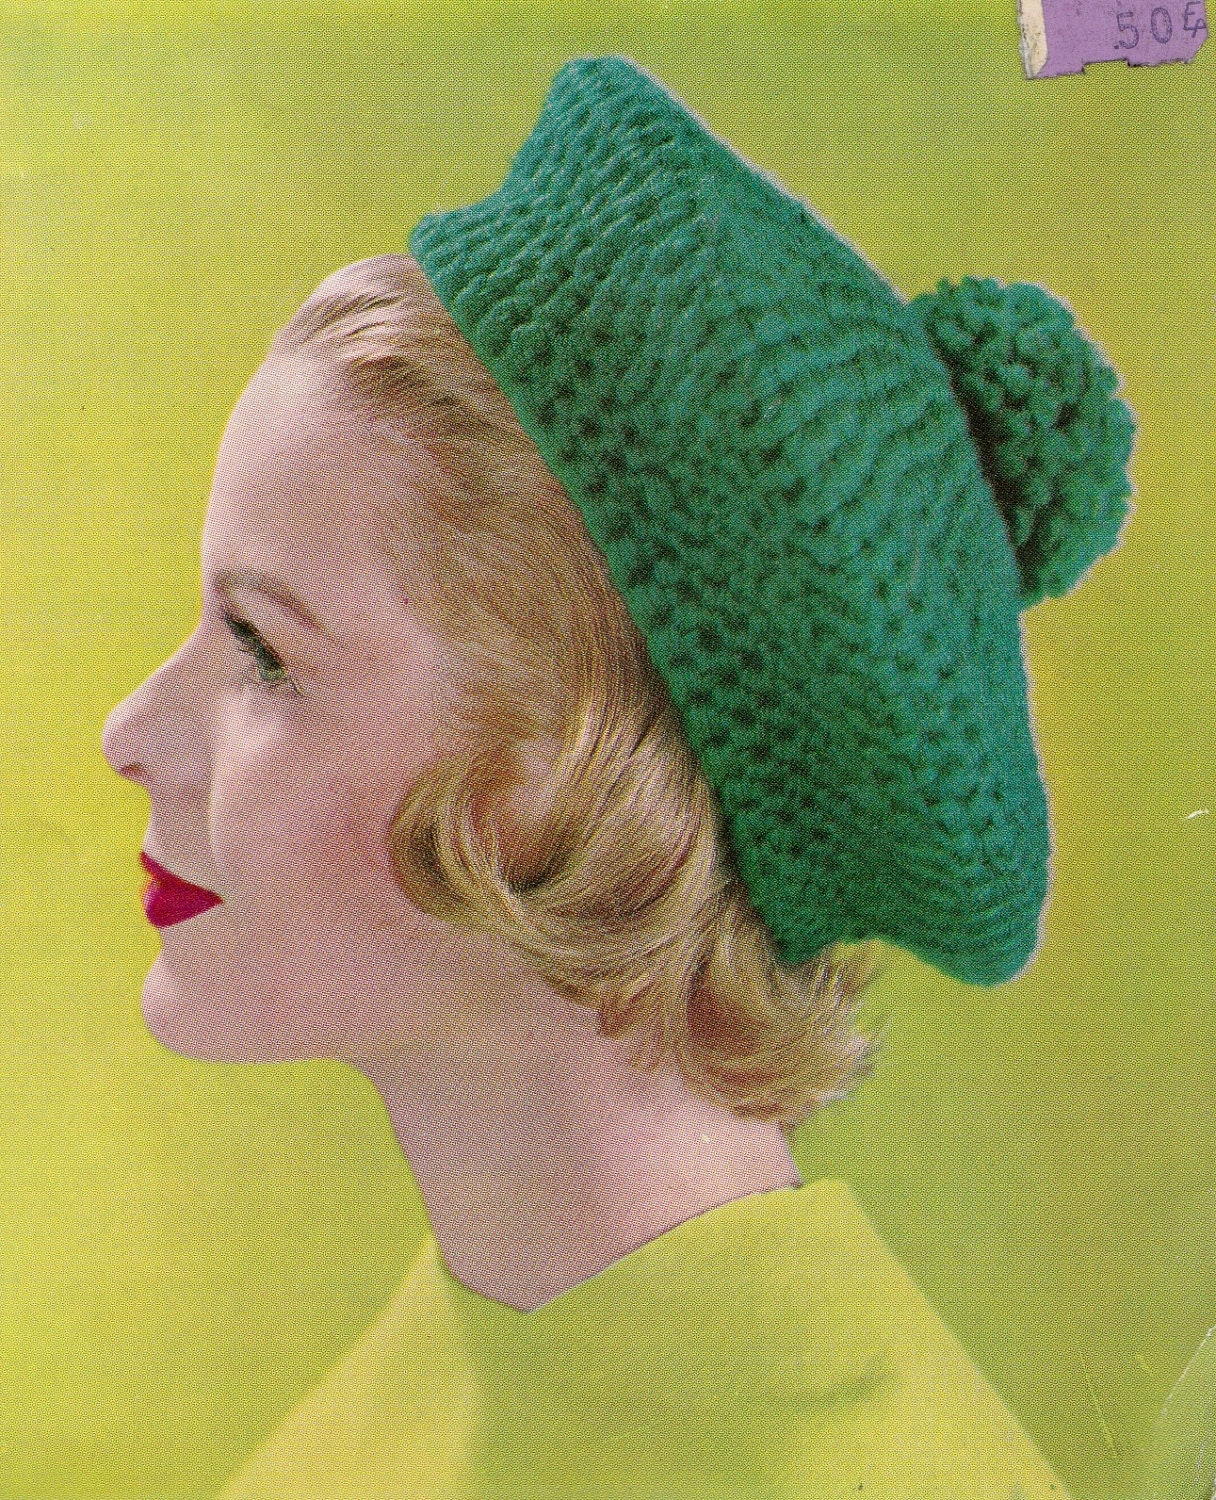 Knitting Pattern For Womens Beret : Crochet Womens Beret 1960s Vintage Knitting PDF by padurns